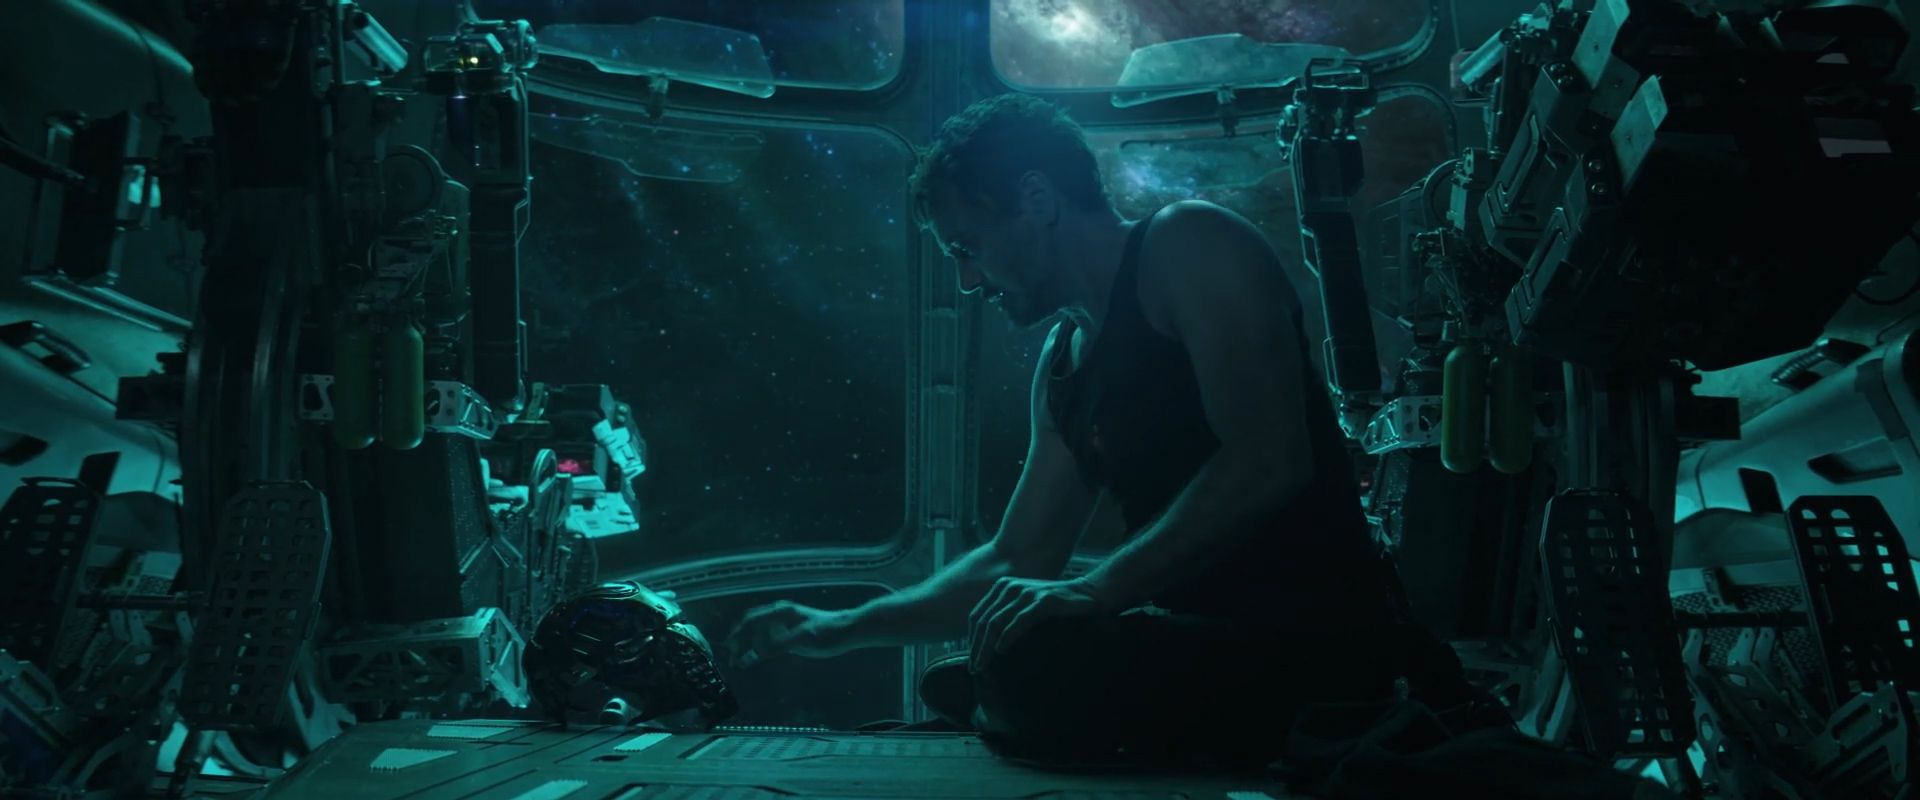 Avengers: Endgame's Gwyneth Paltrow shares adorable goodbye message with co-star Robert Downey Jr